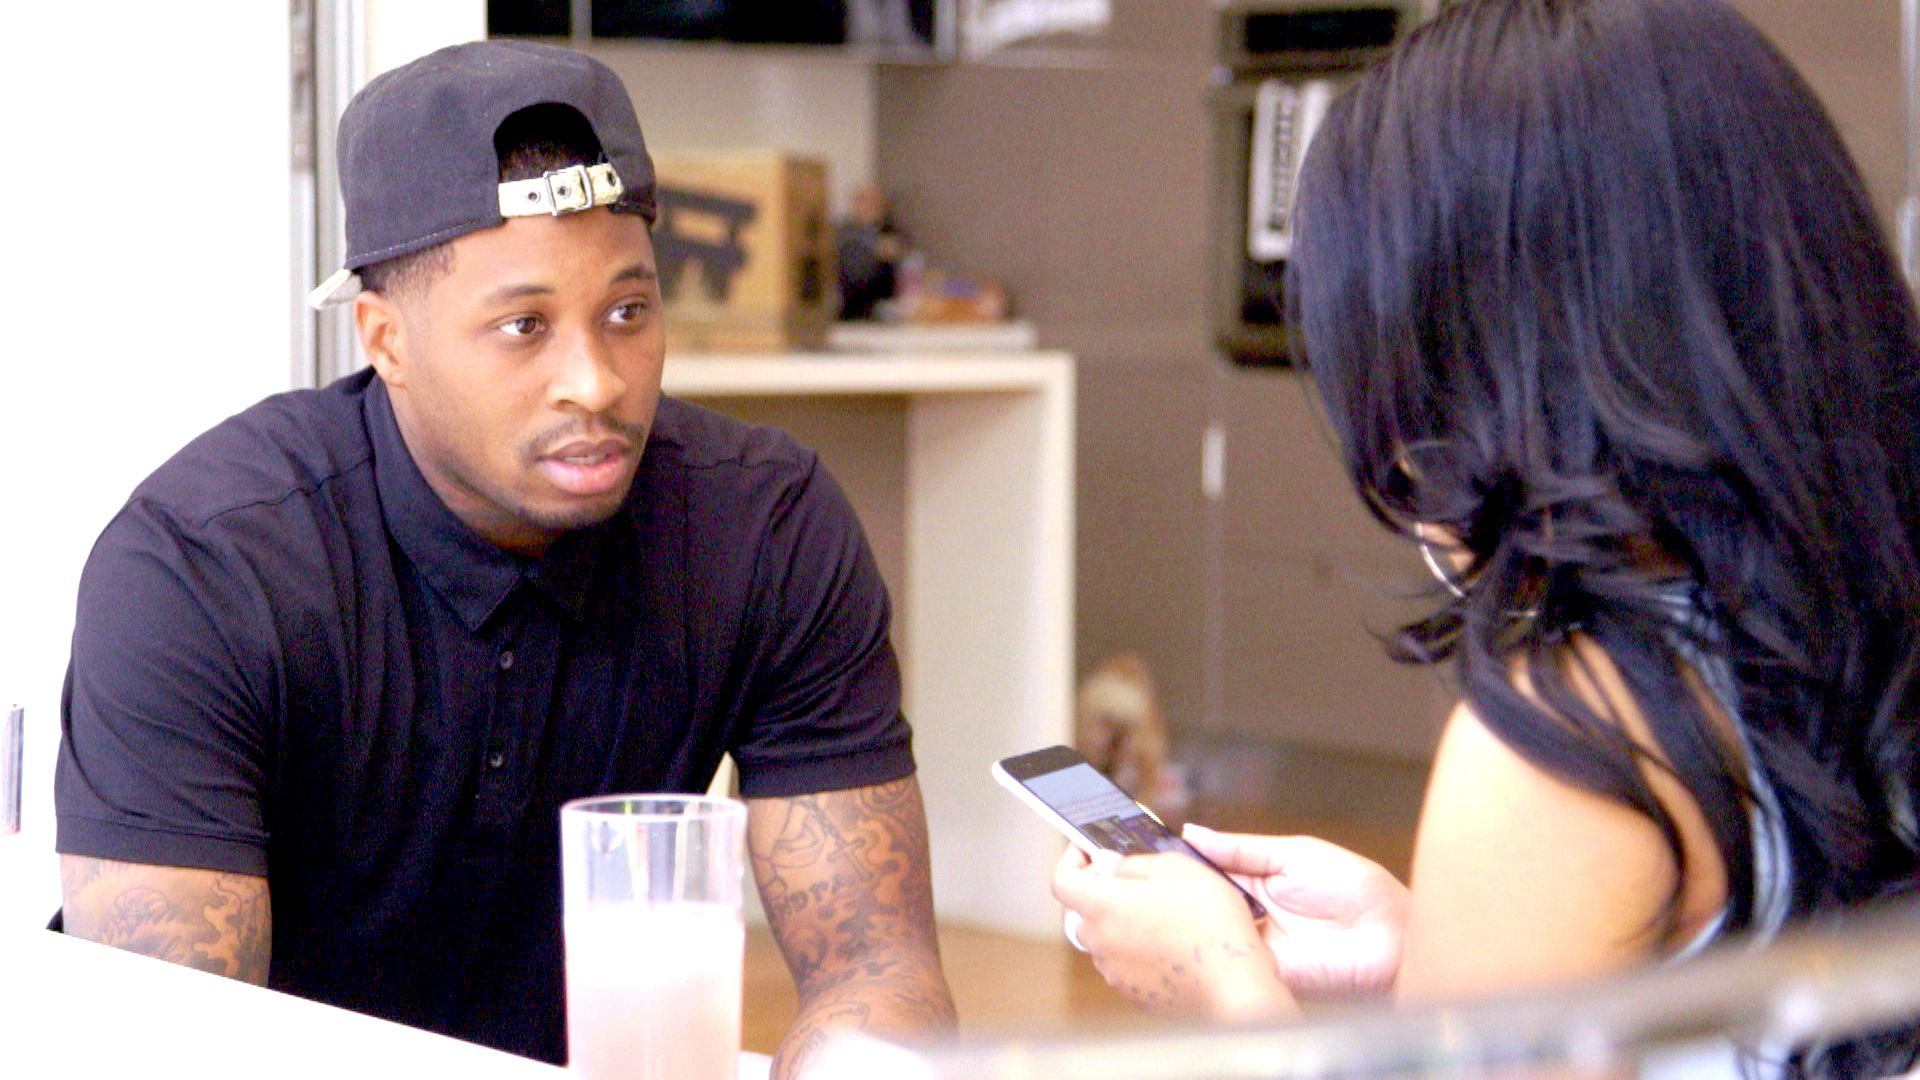 K michelle season 1 episode 2 : Transformers movie videos